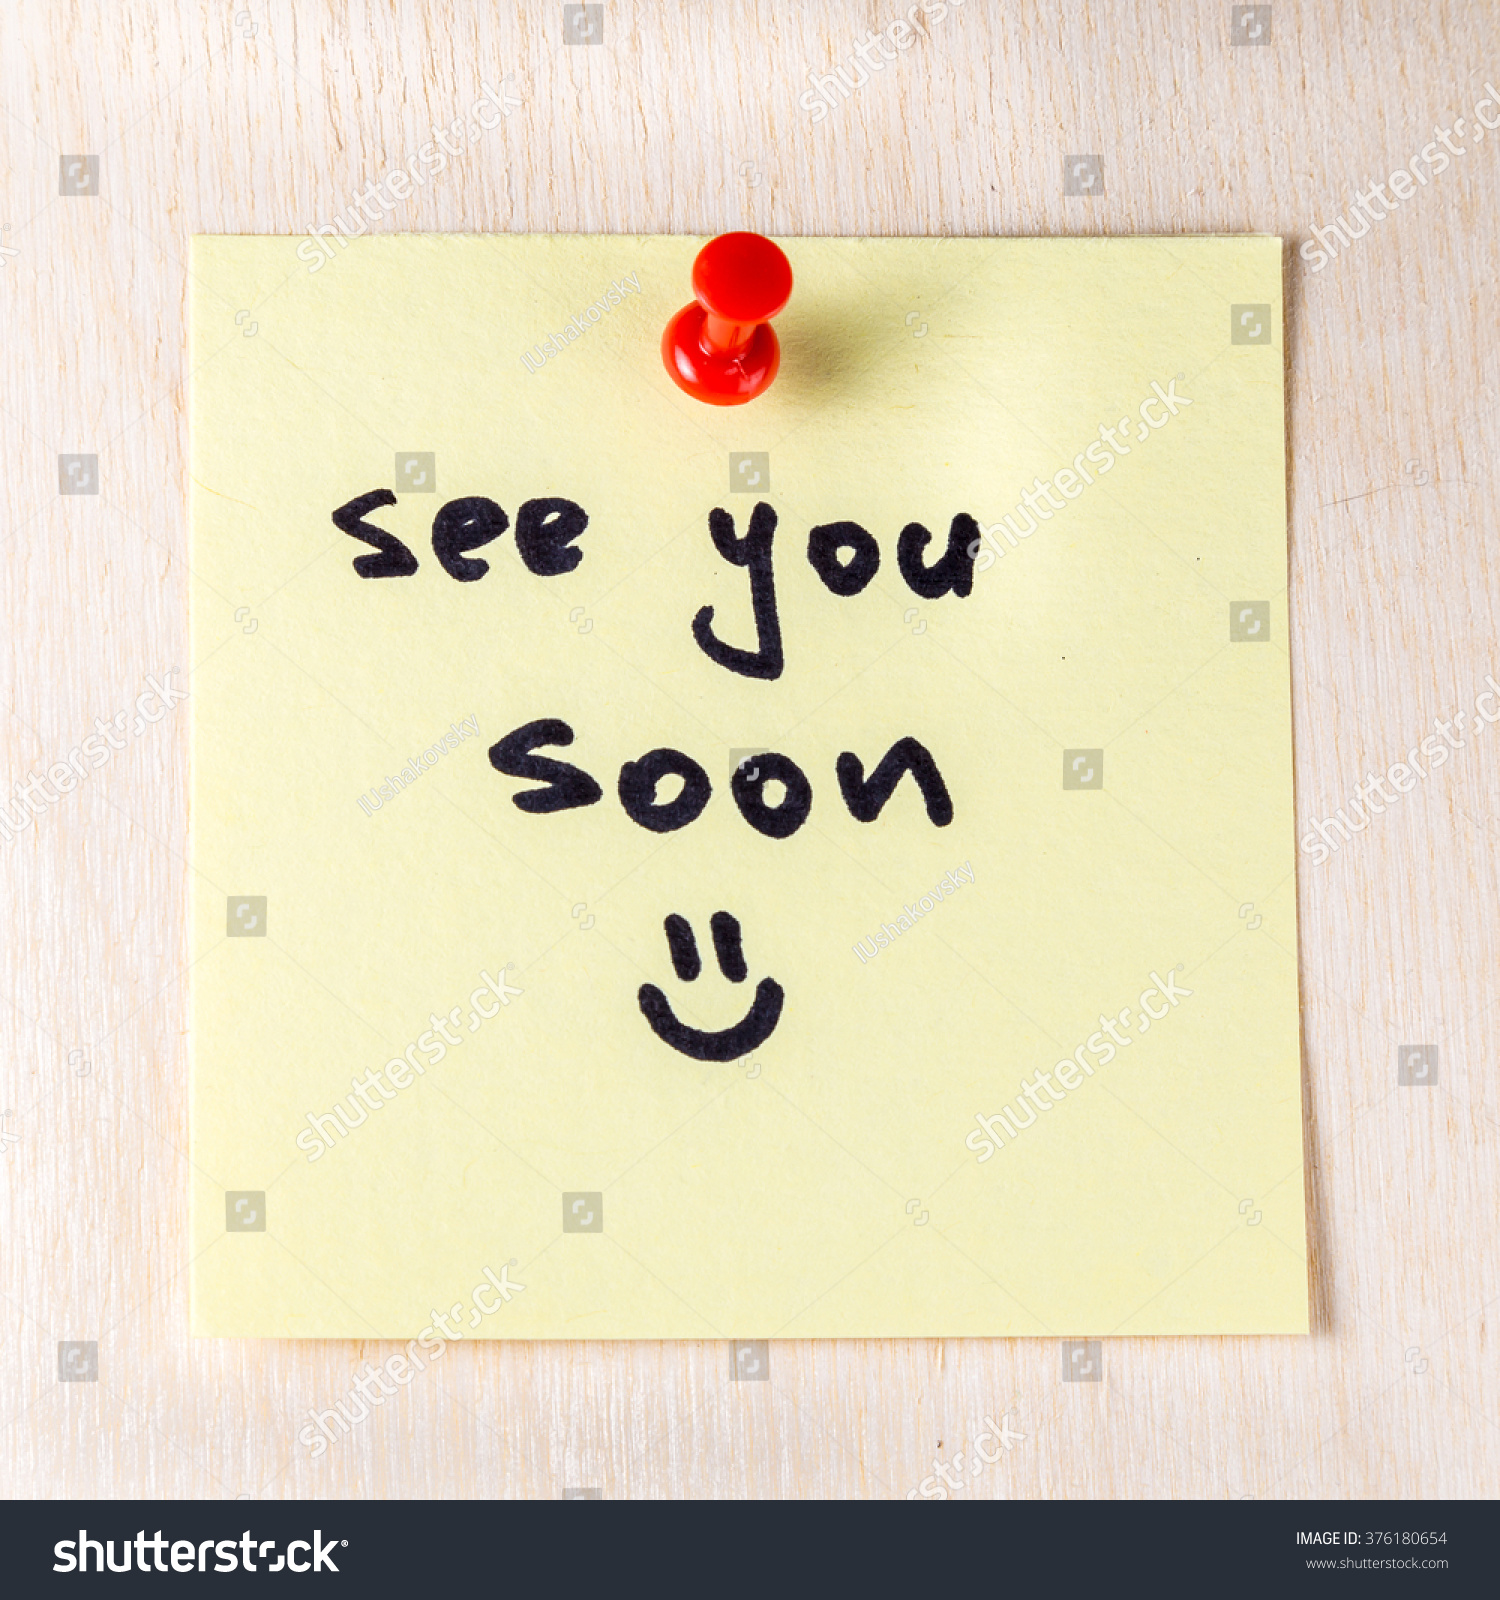 See You Soon Note On Paper Post It Pinned To A Wooden